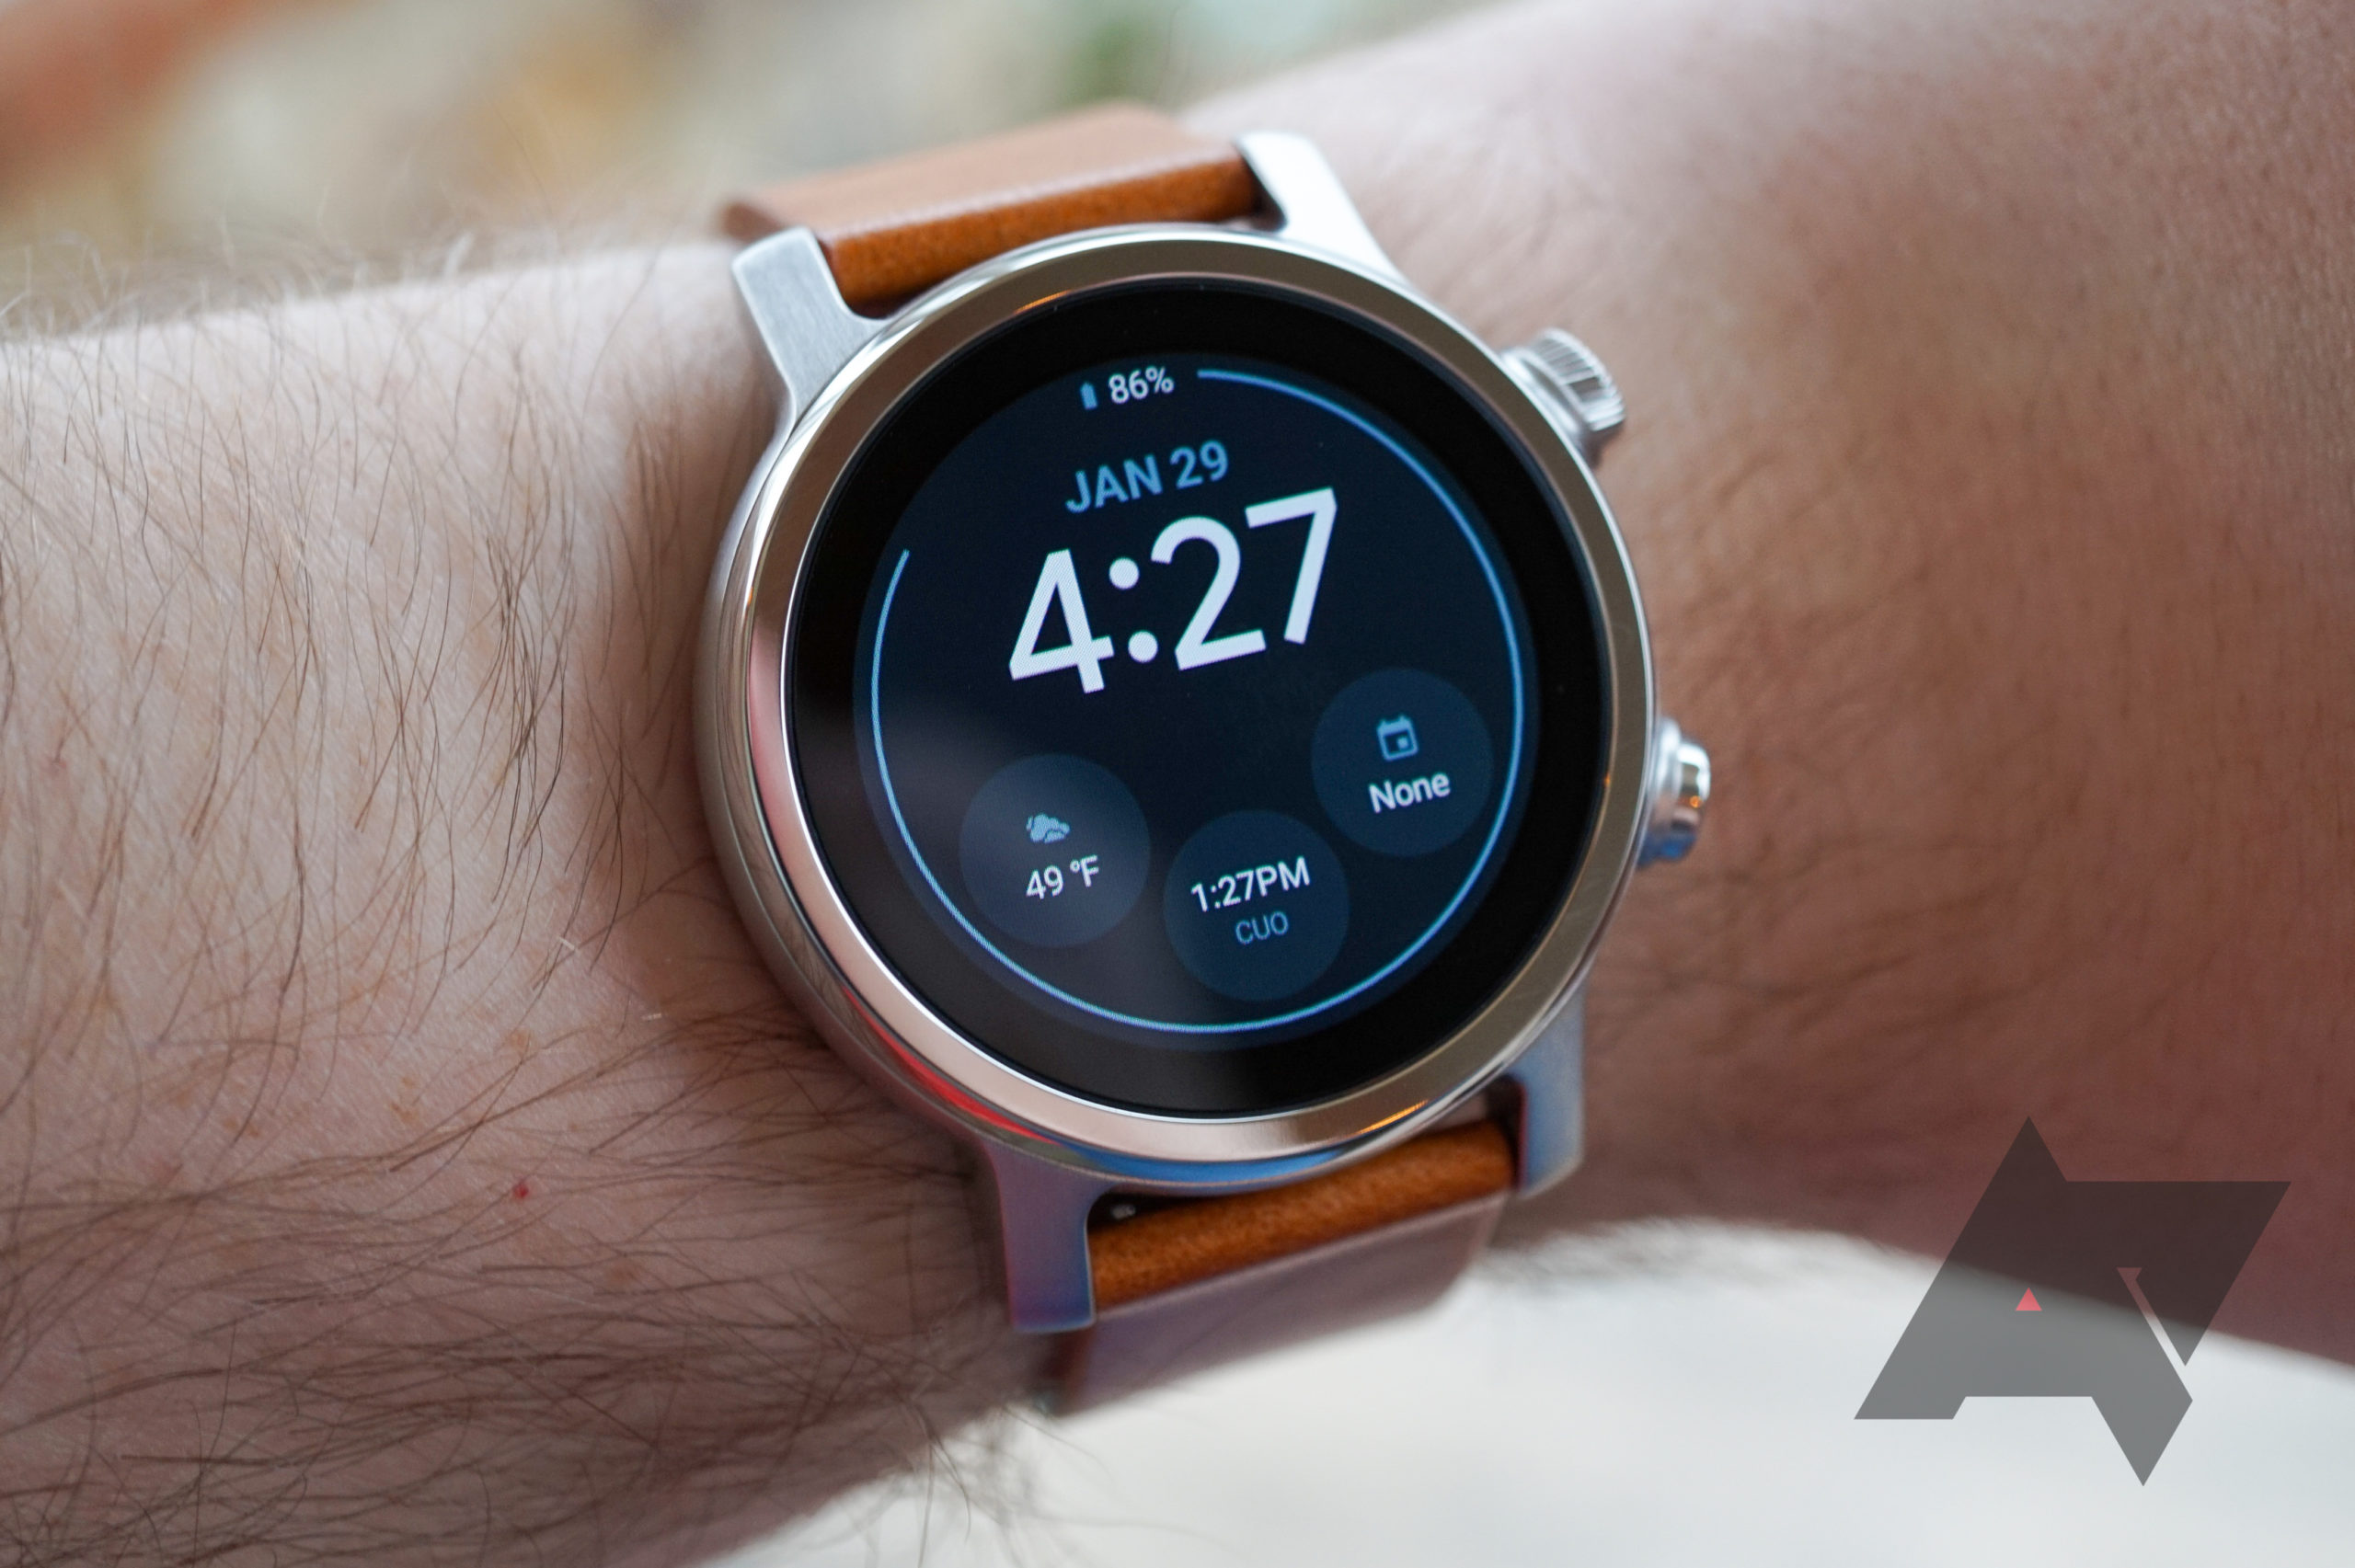 Three new Motorola Wear OS watches could arrive this year - Android Police